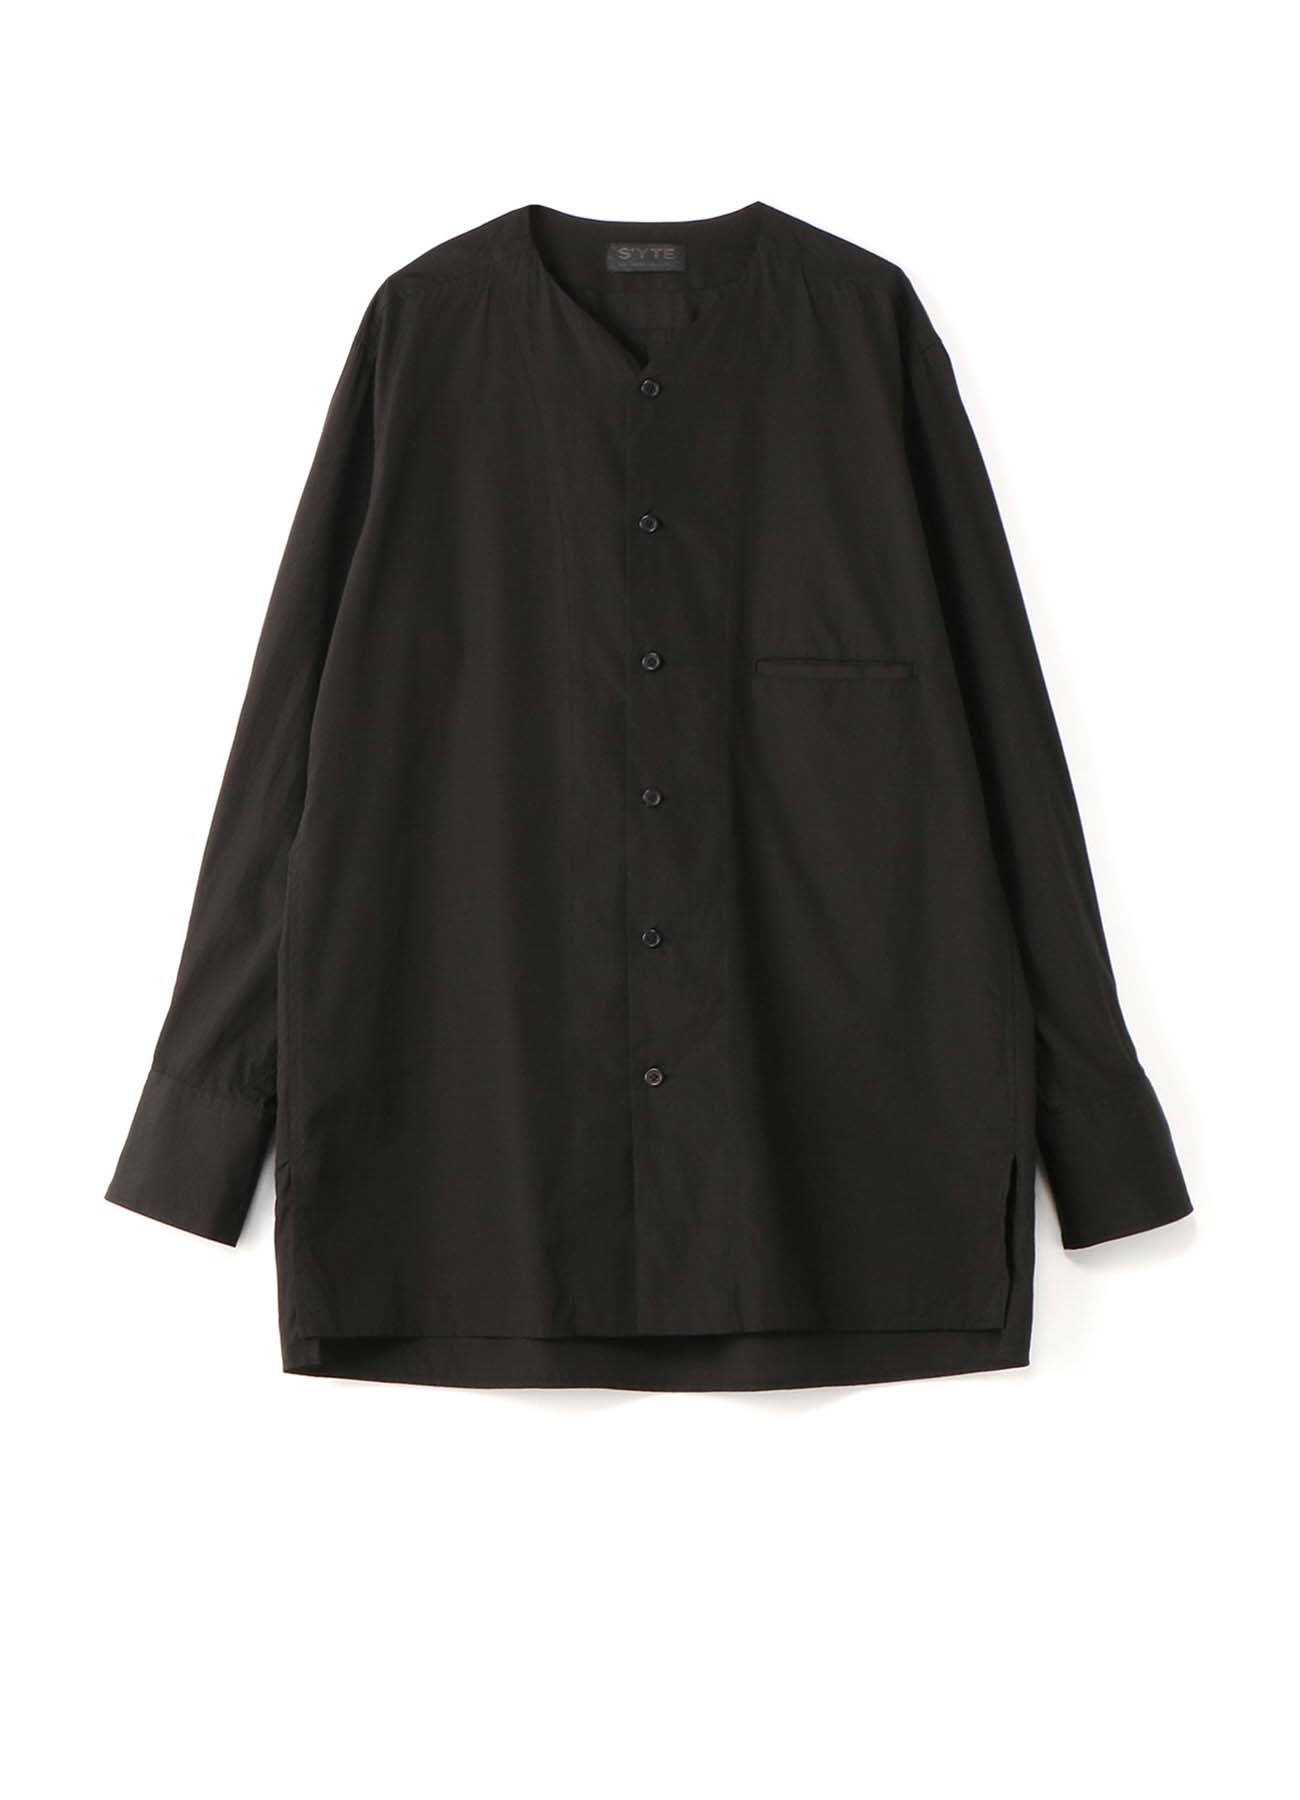 100/2 Broad No-Collar V-Open shirt